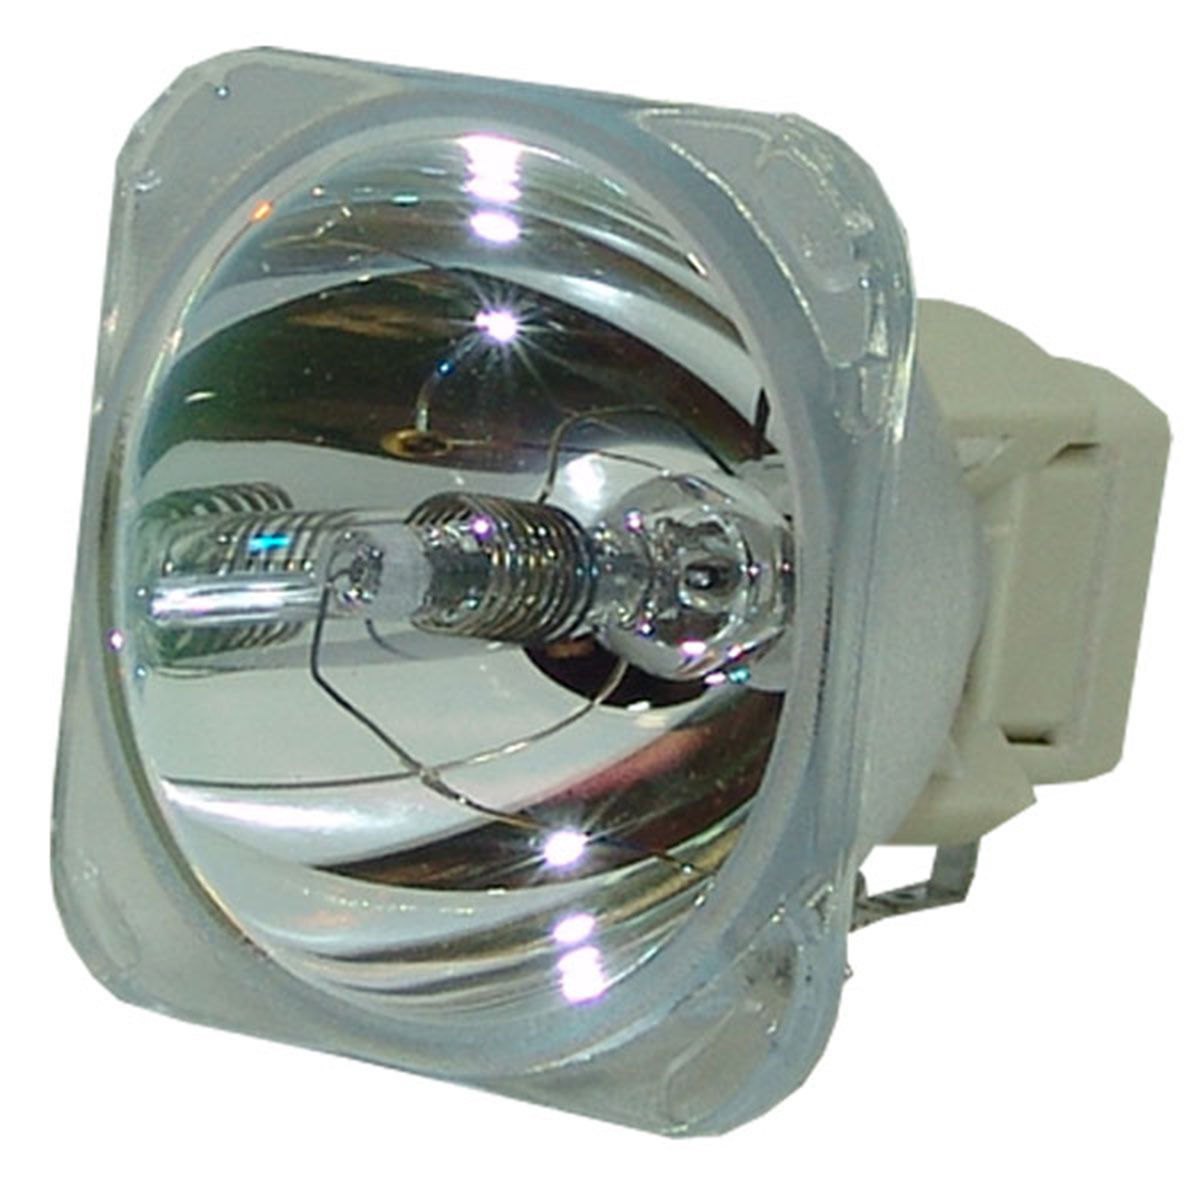 Compatible Bare Bulb AN-P610LP for SHARP XG-P560W XG-P560WA XG-P560WN XG-P610X XG-P610XN Projector Lamp Bulb Without housing wholesale an p610lp lamp with housing for sharp xg p560w xg p560wa xg p560wn xg p610x xg p610xn projectors